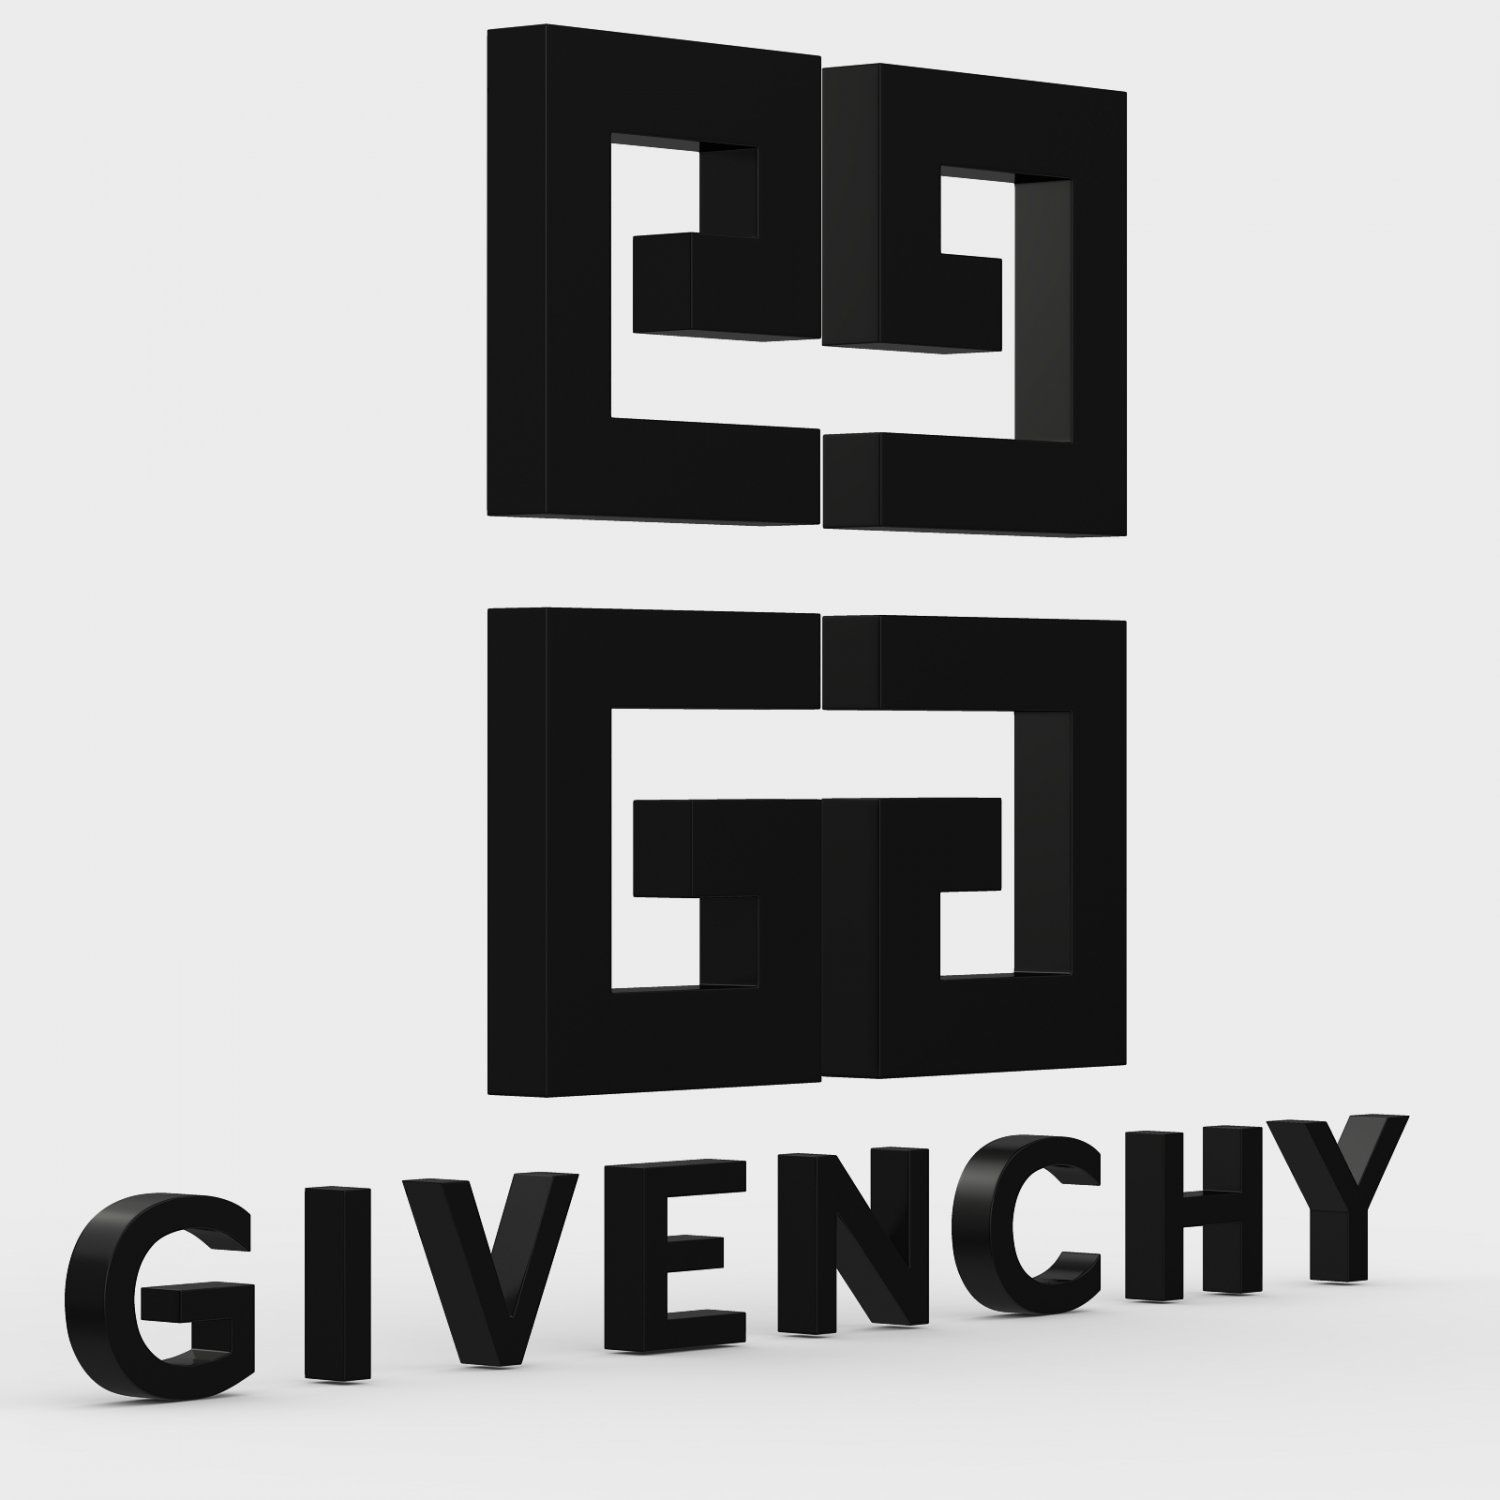 Givenchy Logo - Givenchy logo 3D Model in Other 3DExport